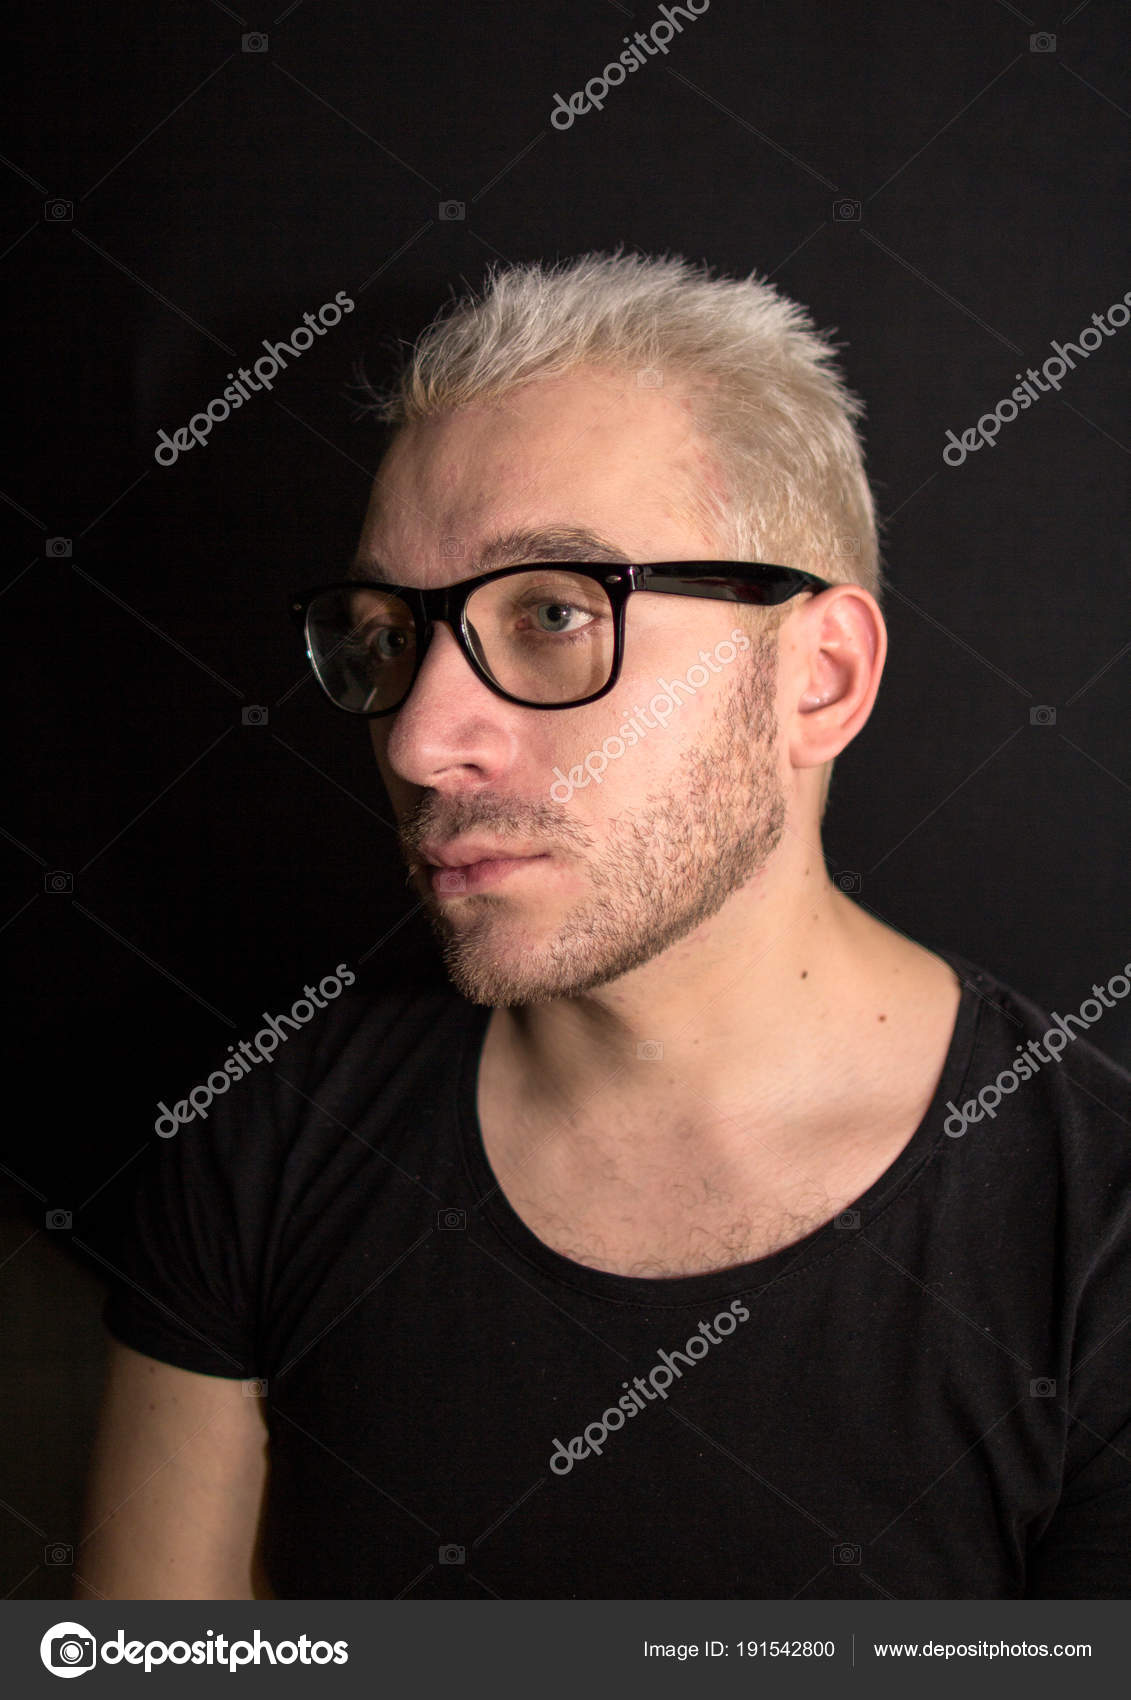 811e567c4885 A portrait of a young bearded man. A guy looking away. Man in black t-shirt  and eye glasses on black background.– stock image